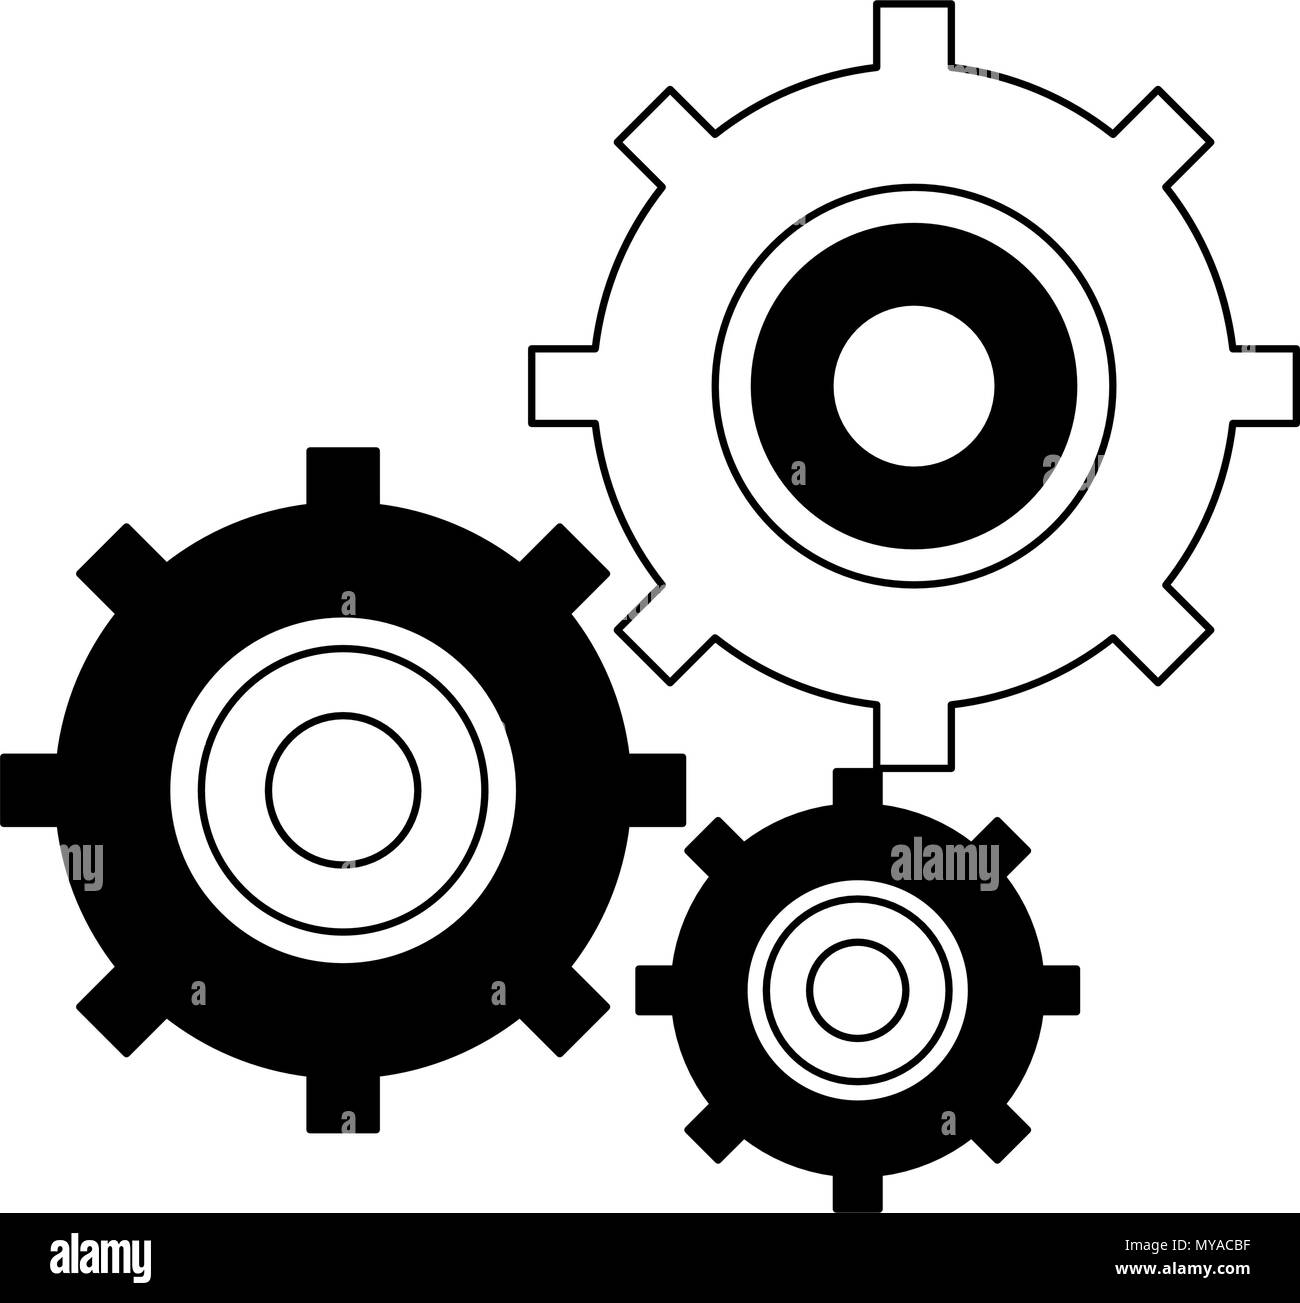 Gears working symbol in black and white - Stock Vector